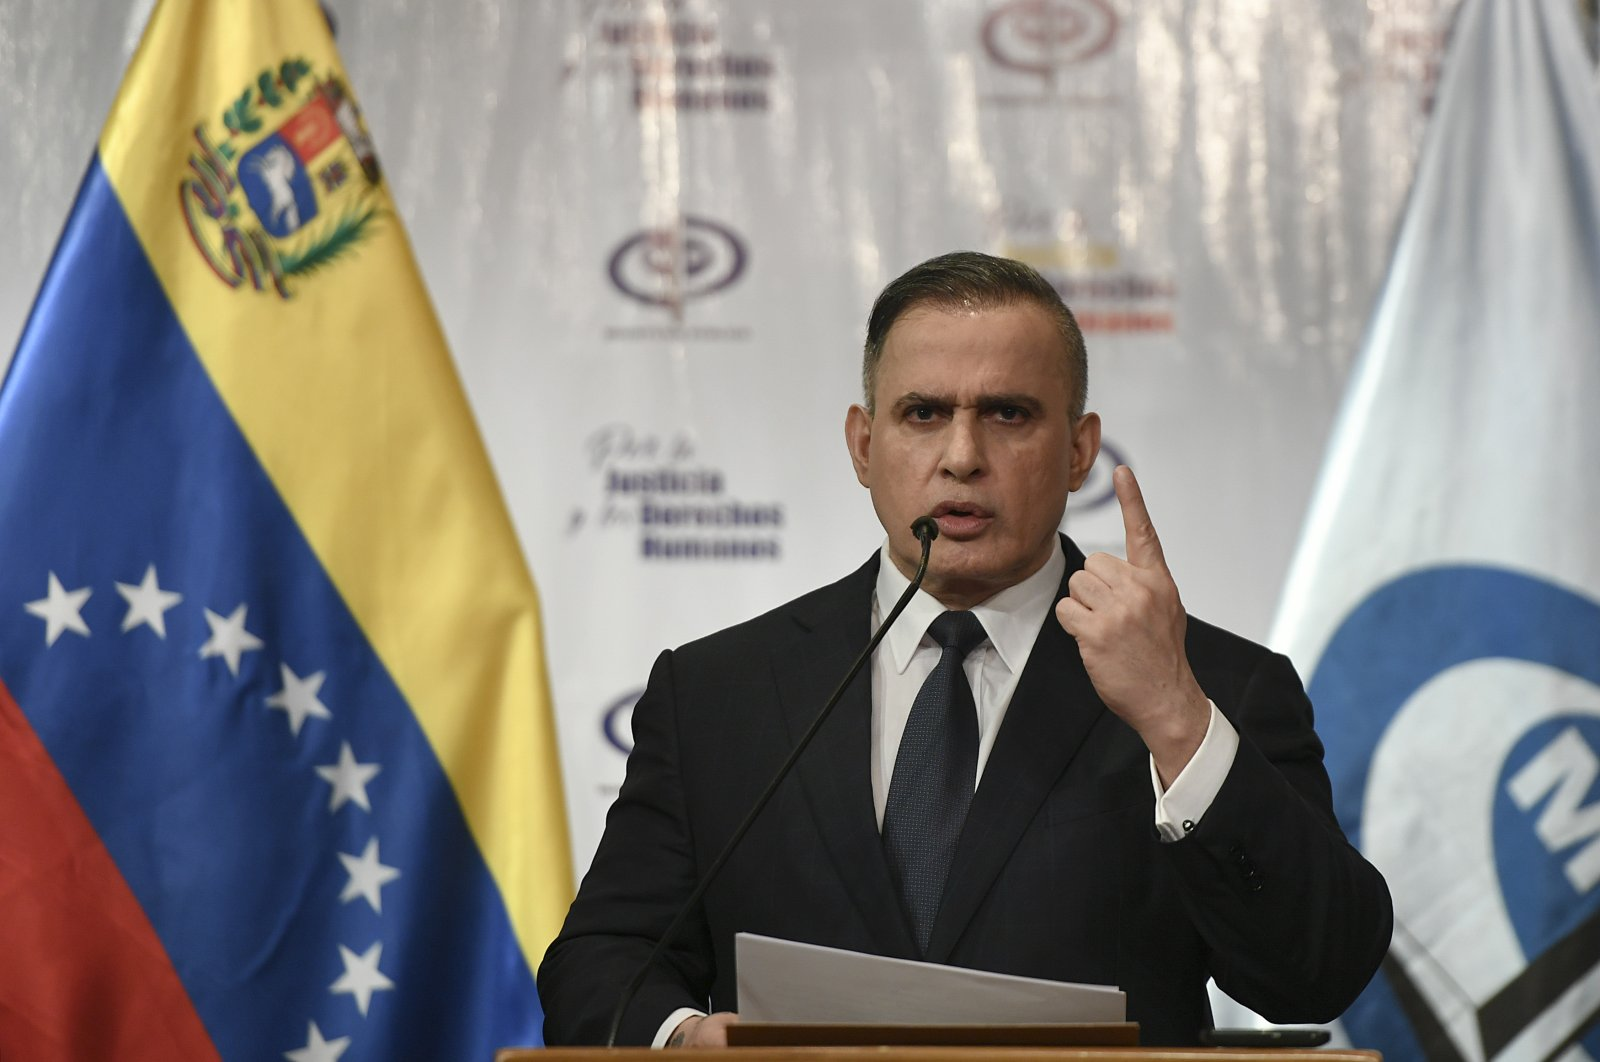 Venezuela's Attorney General Tarek William Saab gives a press conference regarding the alleged attempt to overthrow President Nicolás Maduro in Caracas, Venezuela, May 8, 2020. (AP Photo)